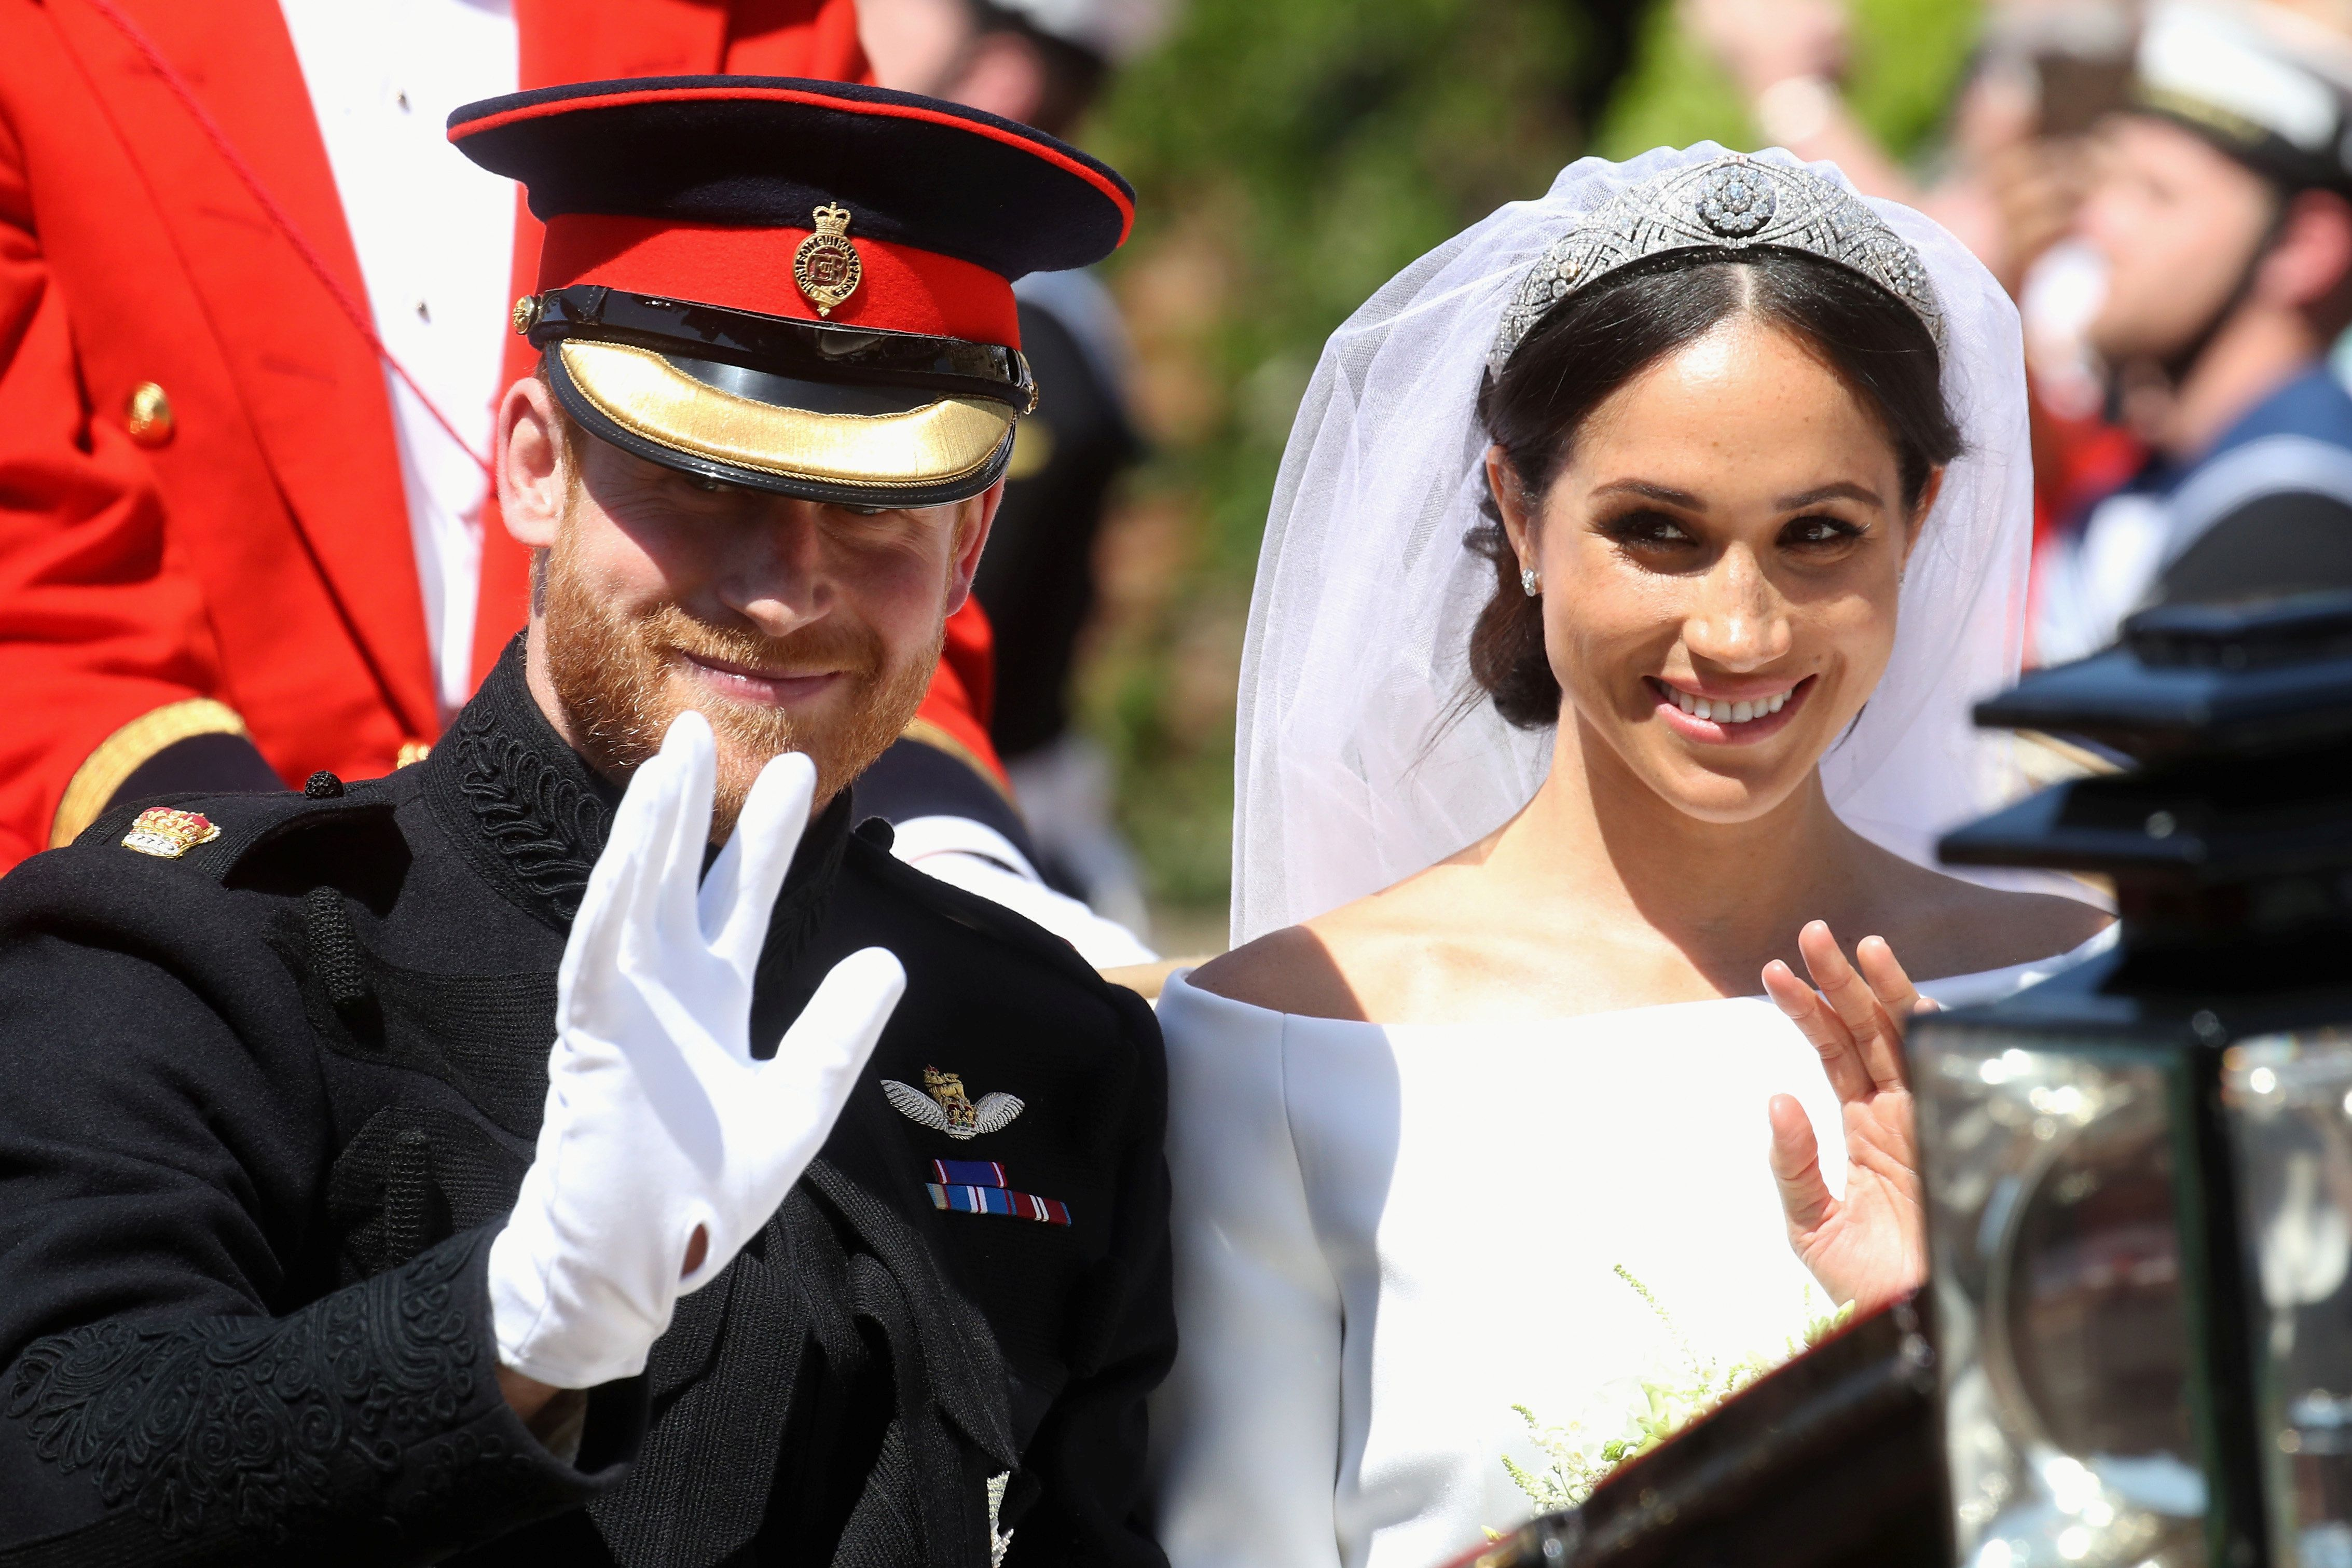 """<a  data-cke-saved-href=""""https://www.huffingtonpost.com/topic/meghan-markle"""" href=""""https://www.huffingtonpost.com/topic/meghan-markle"""" target=""""_blank"""" rel=""""noopener noreferrer""""></a>Meghan Markle's something borrowed and something blue traditions have been revealed in a new documentary."""